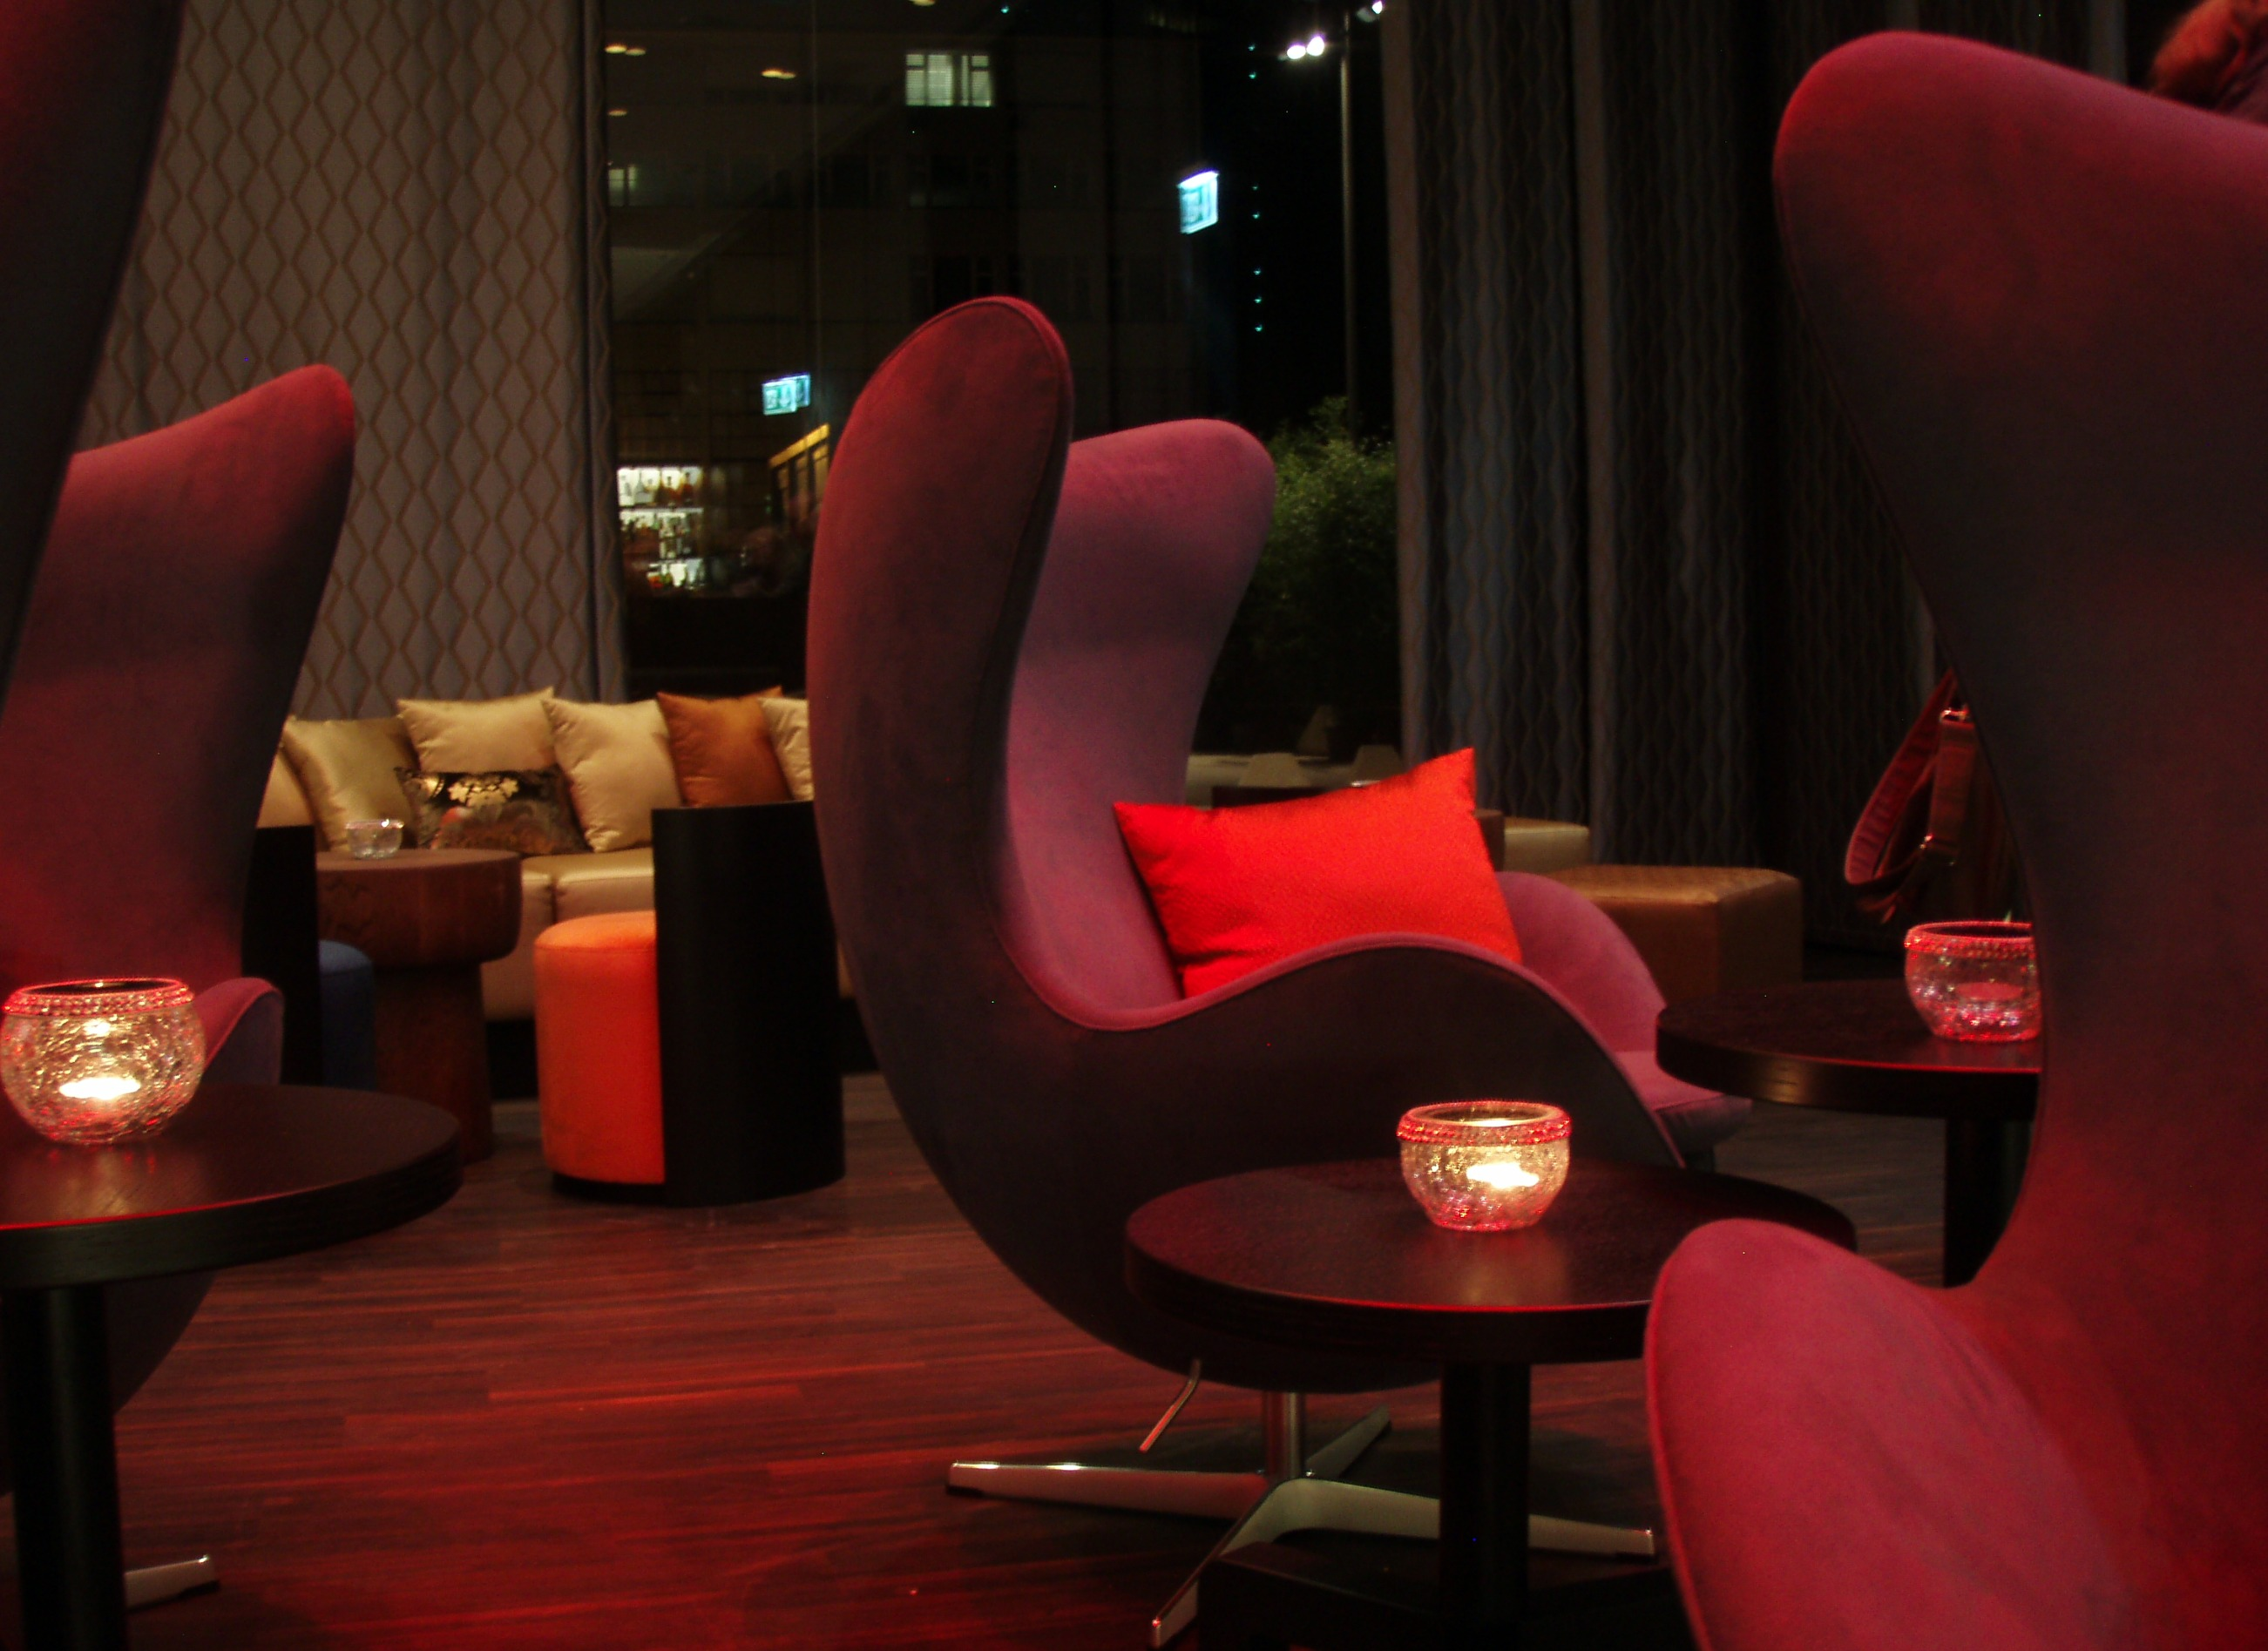 Stylish colorful armchairs in the hotel's lounge